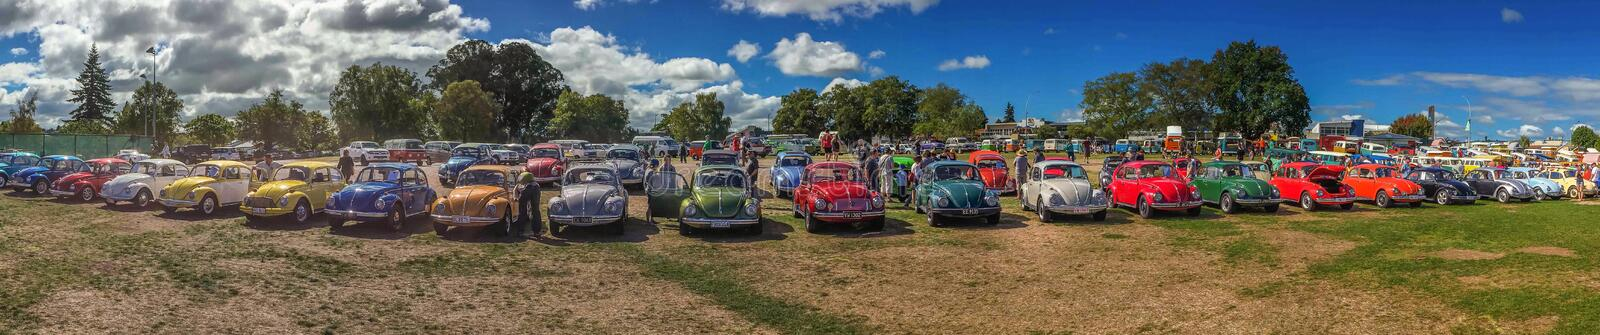 Taupo, New Zealand, April, 14, 2015: A sweeping panoramic view of a row of brighly coloured vintage beetle at a auto show stock image